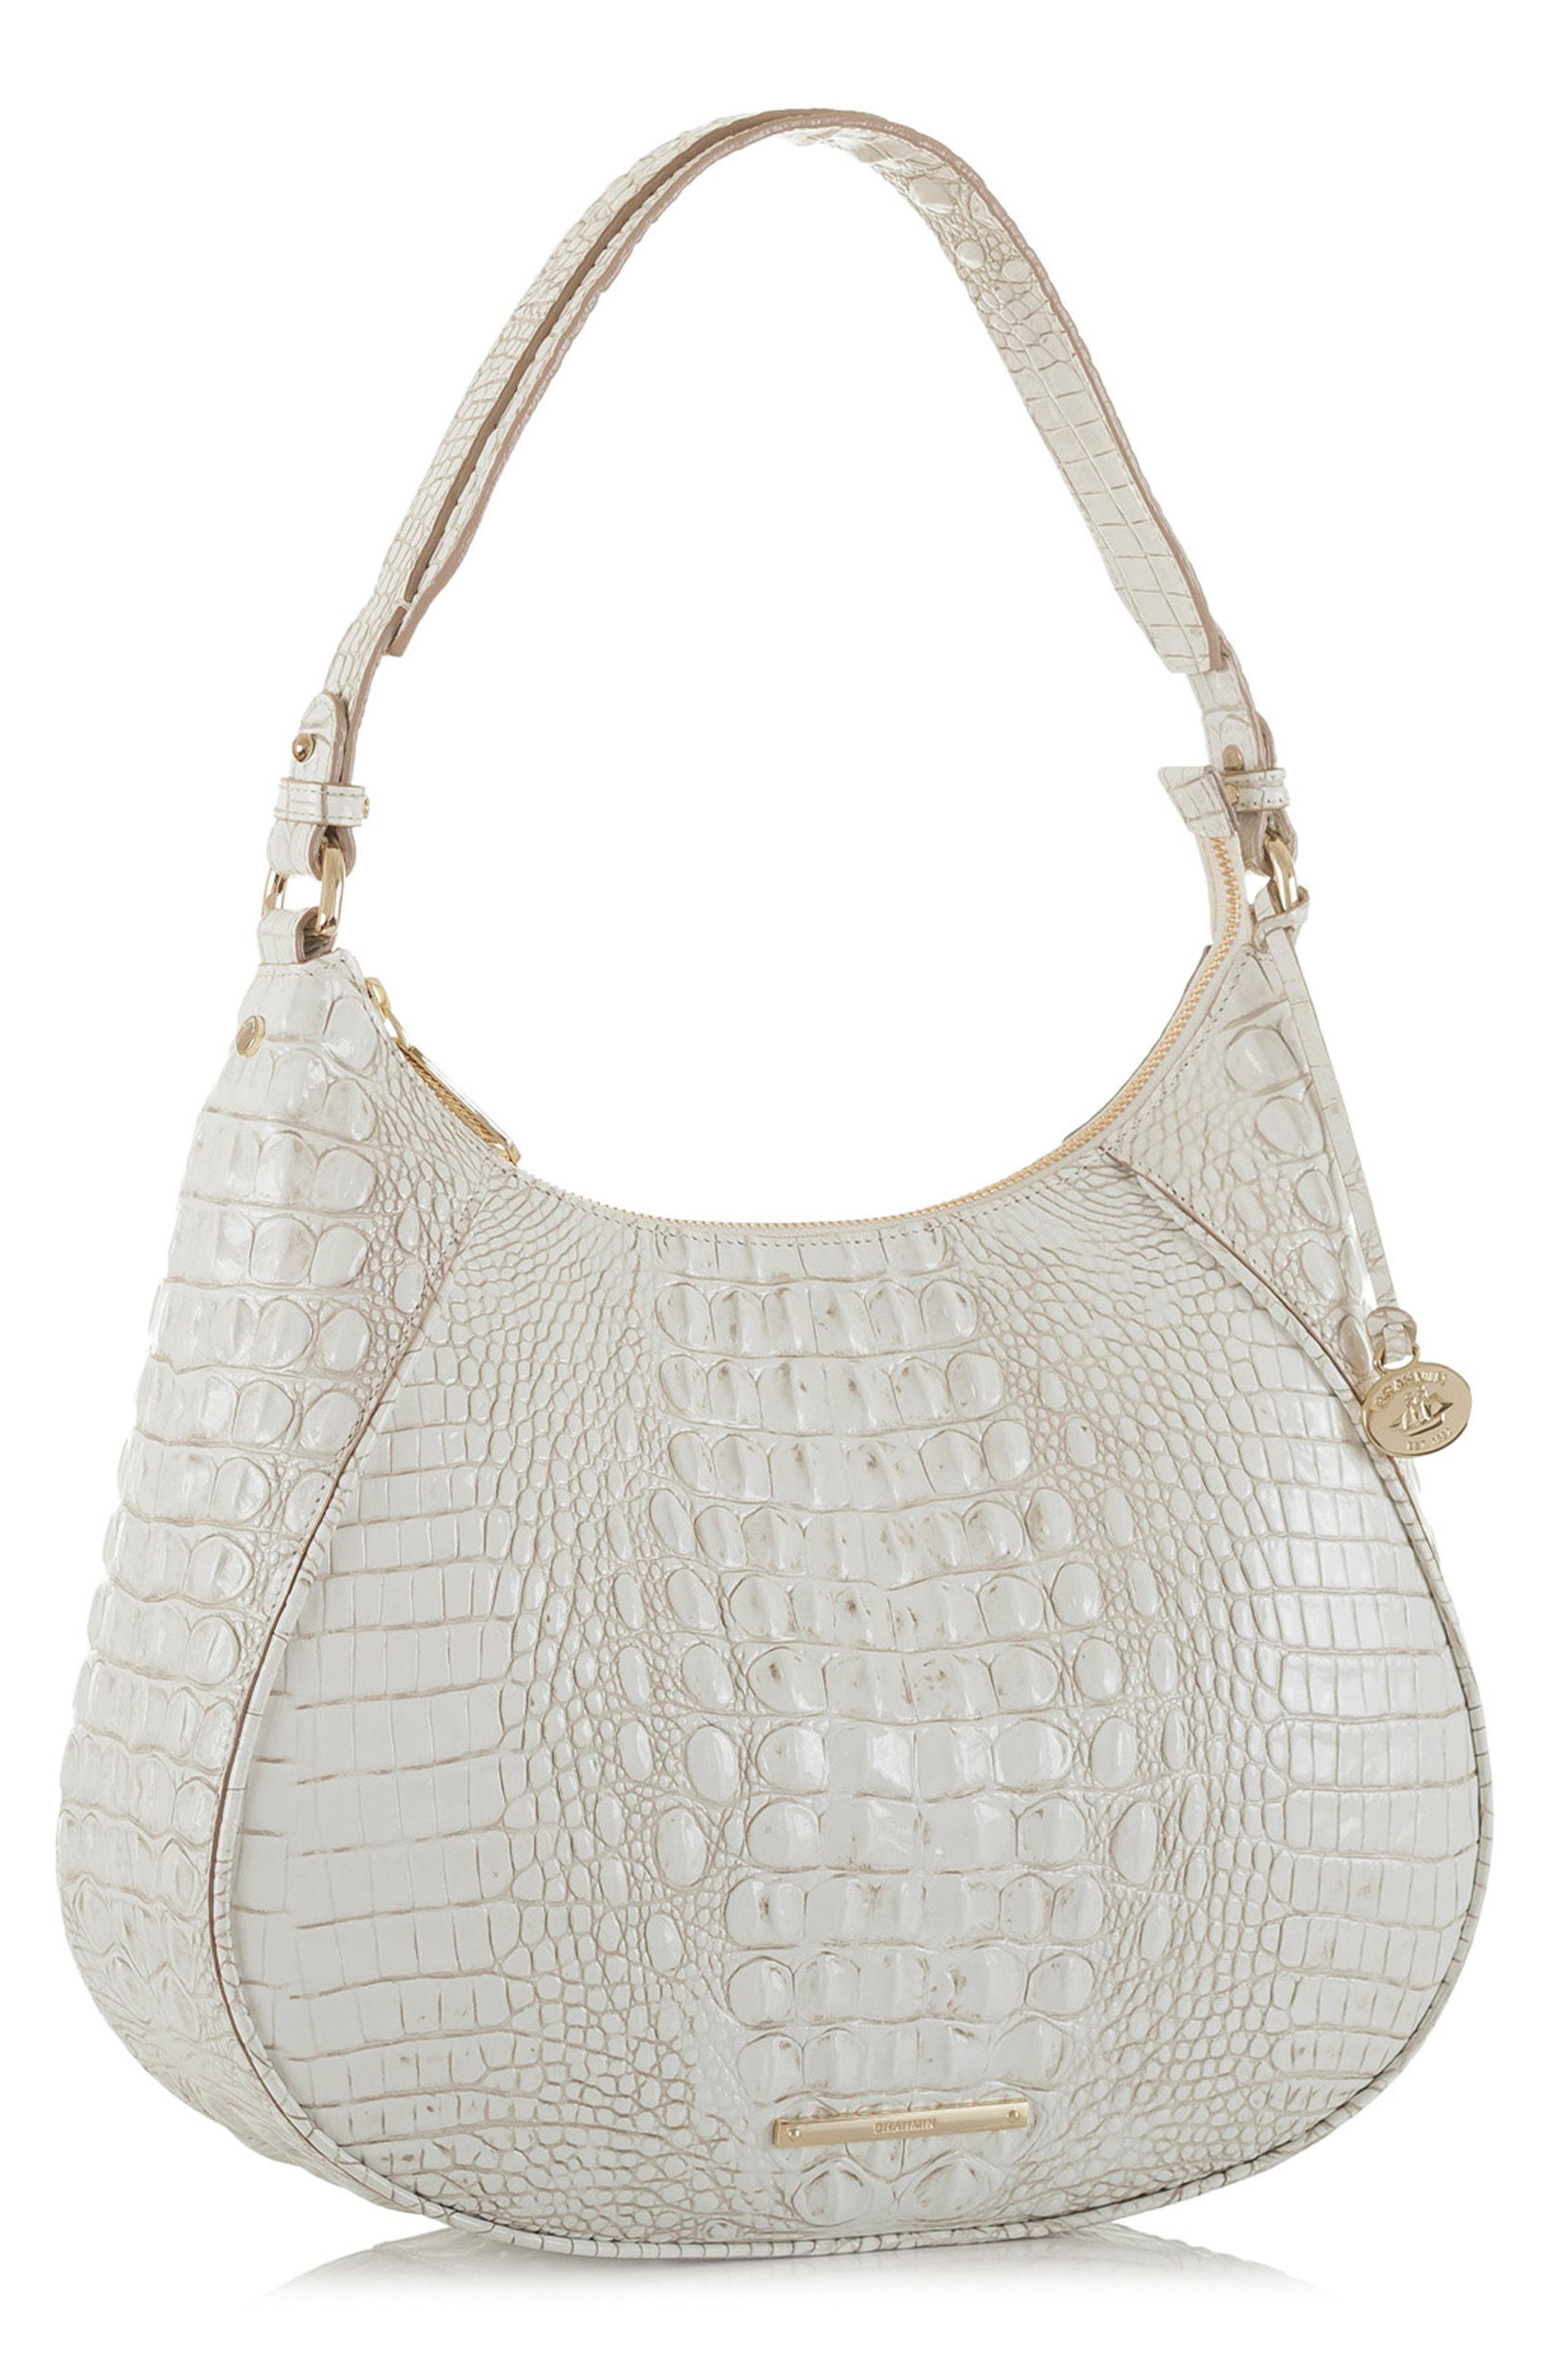 BRAHMIN,                             Melbourne Amira Shoulder Bag,                             Alternate thumbnail 4, color,                             100